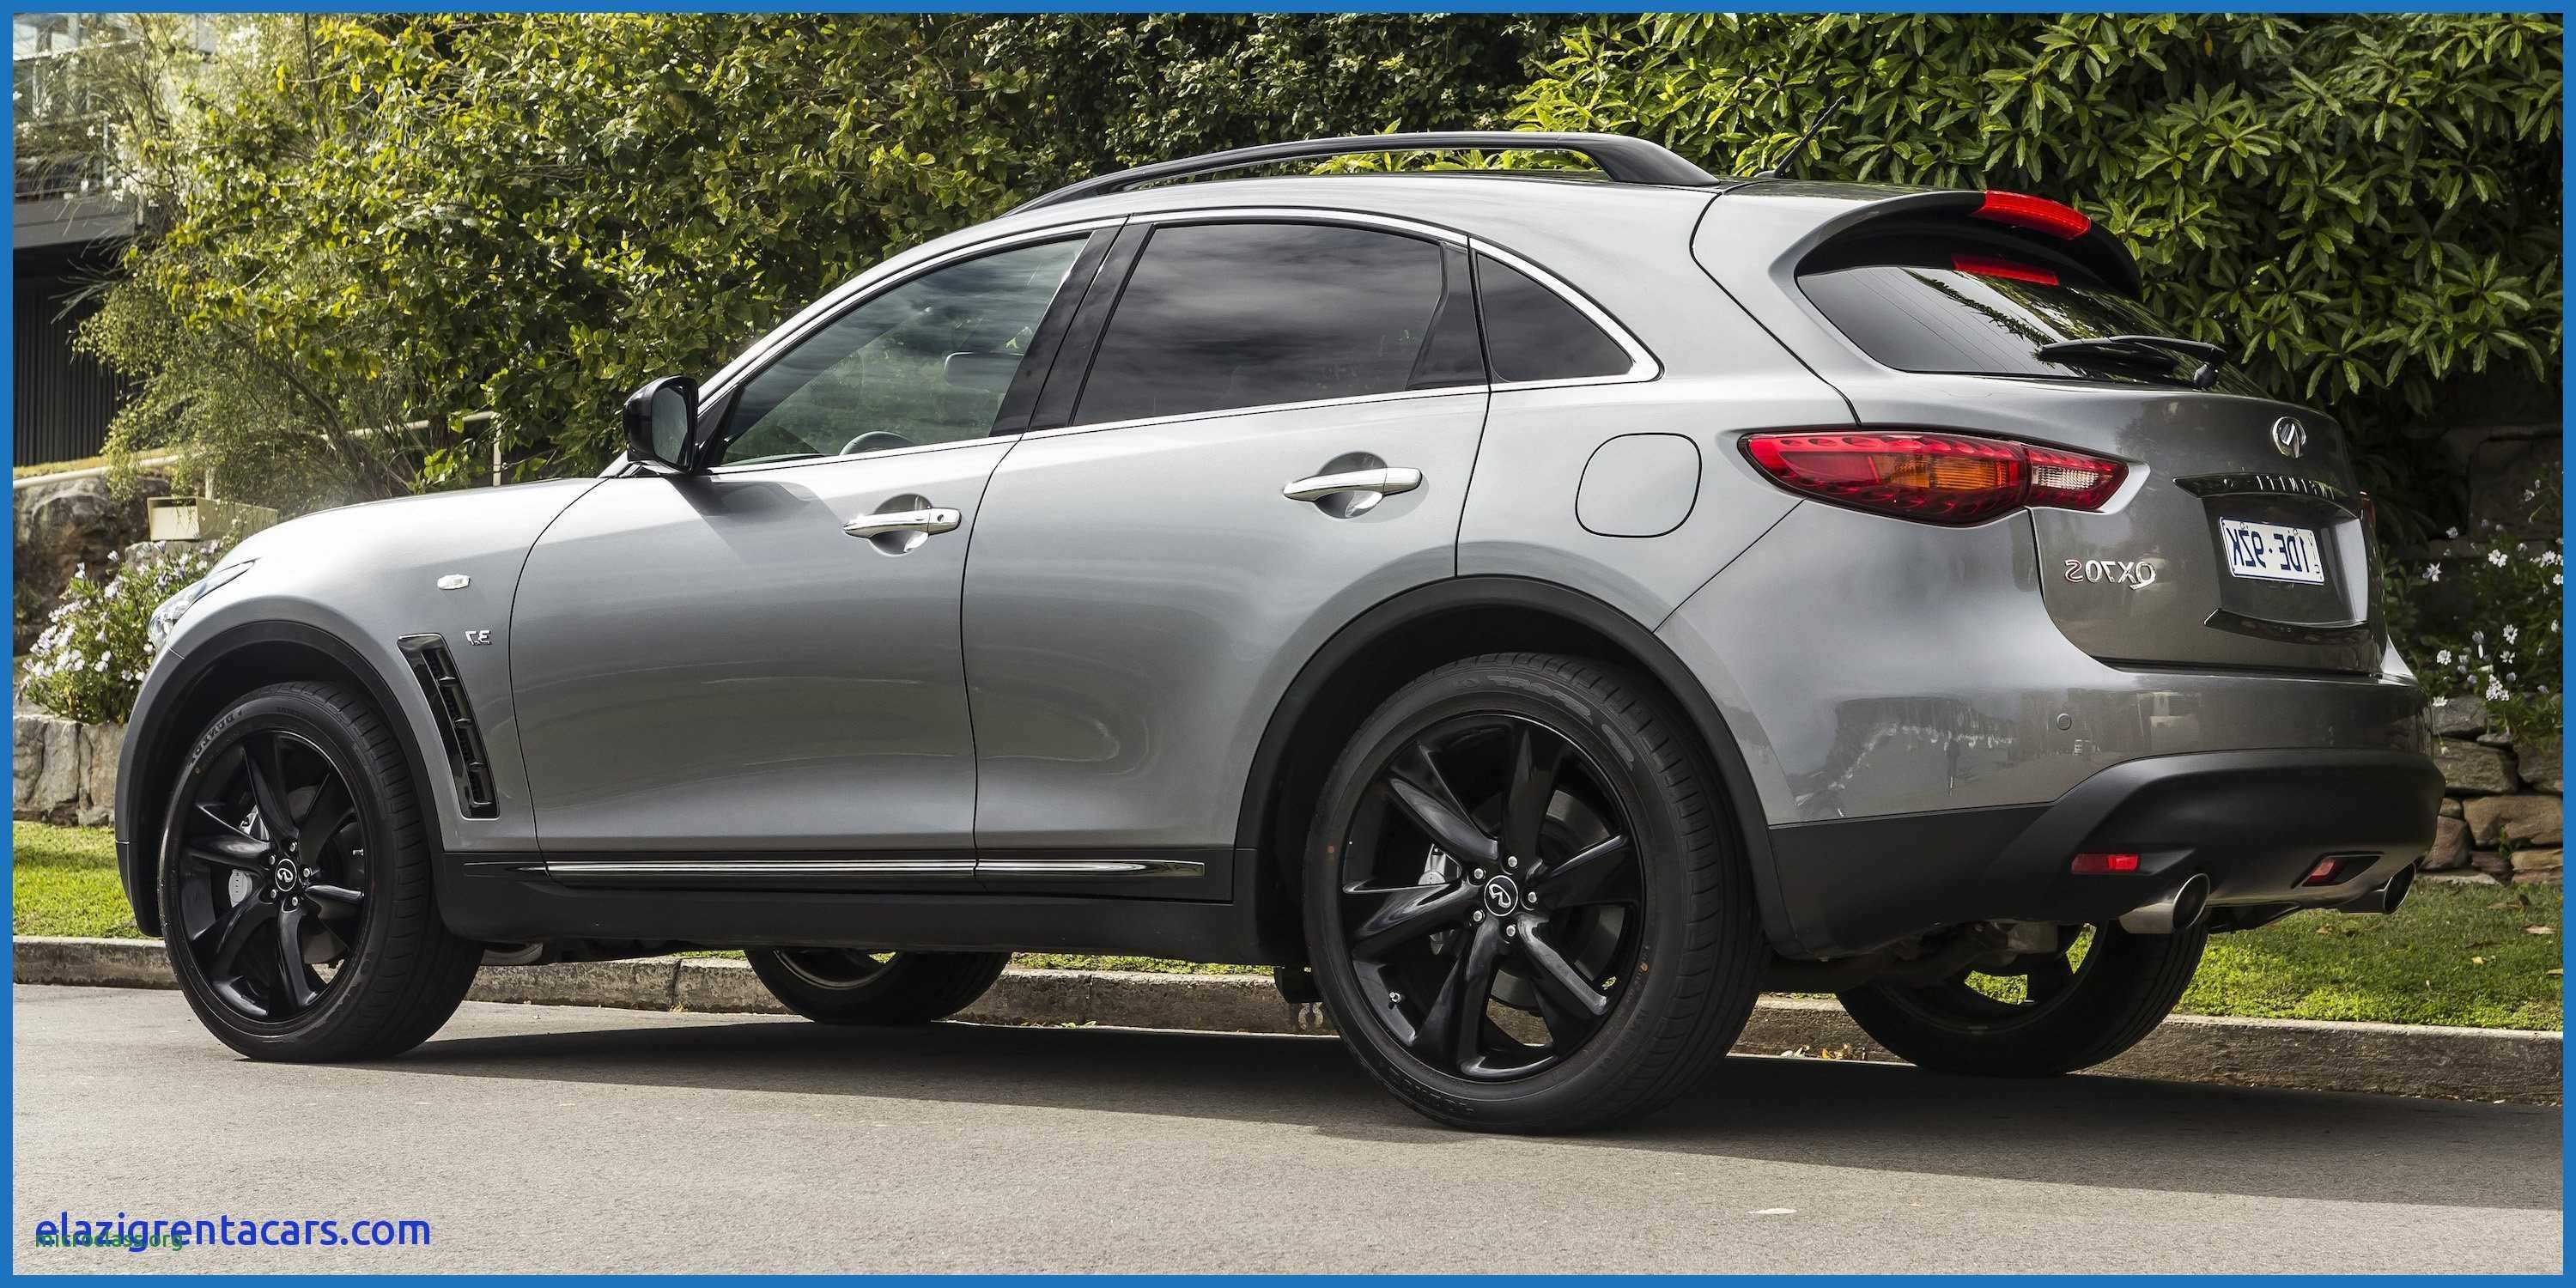 70 All New 2020 Infiniti Qx70 Redesign Price and Release date